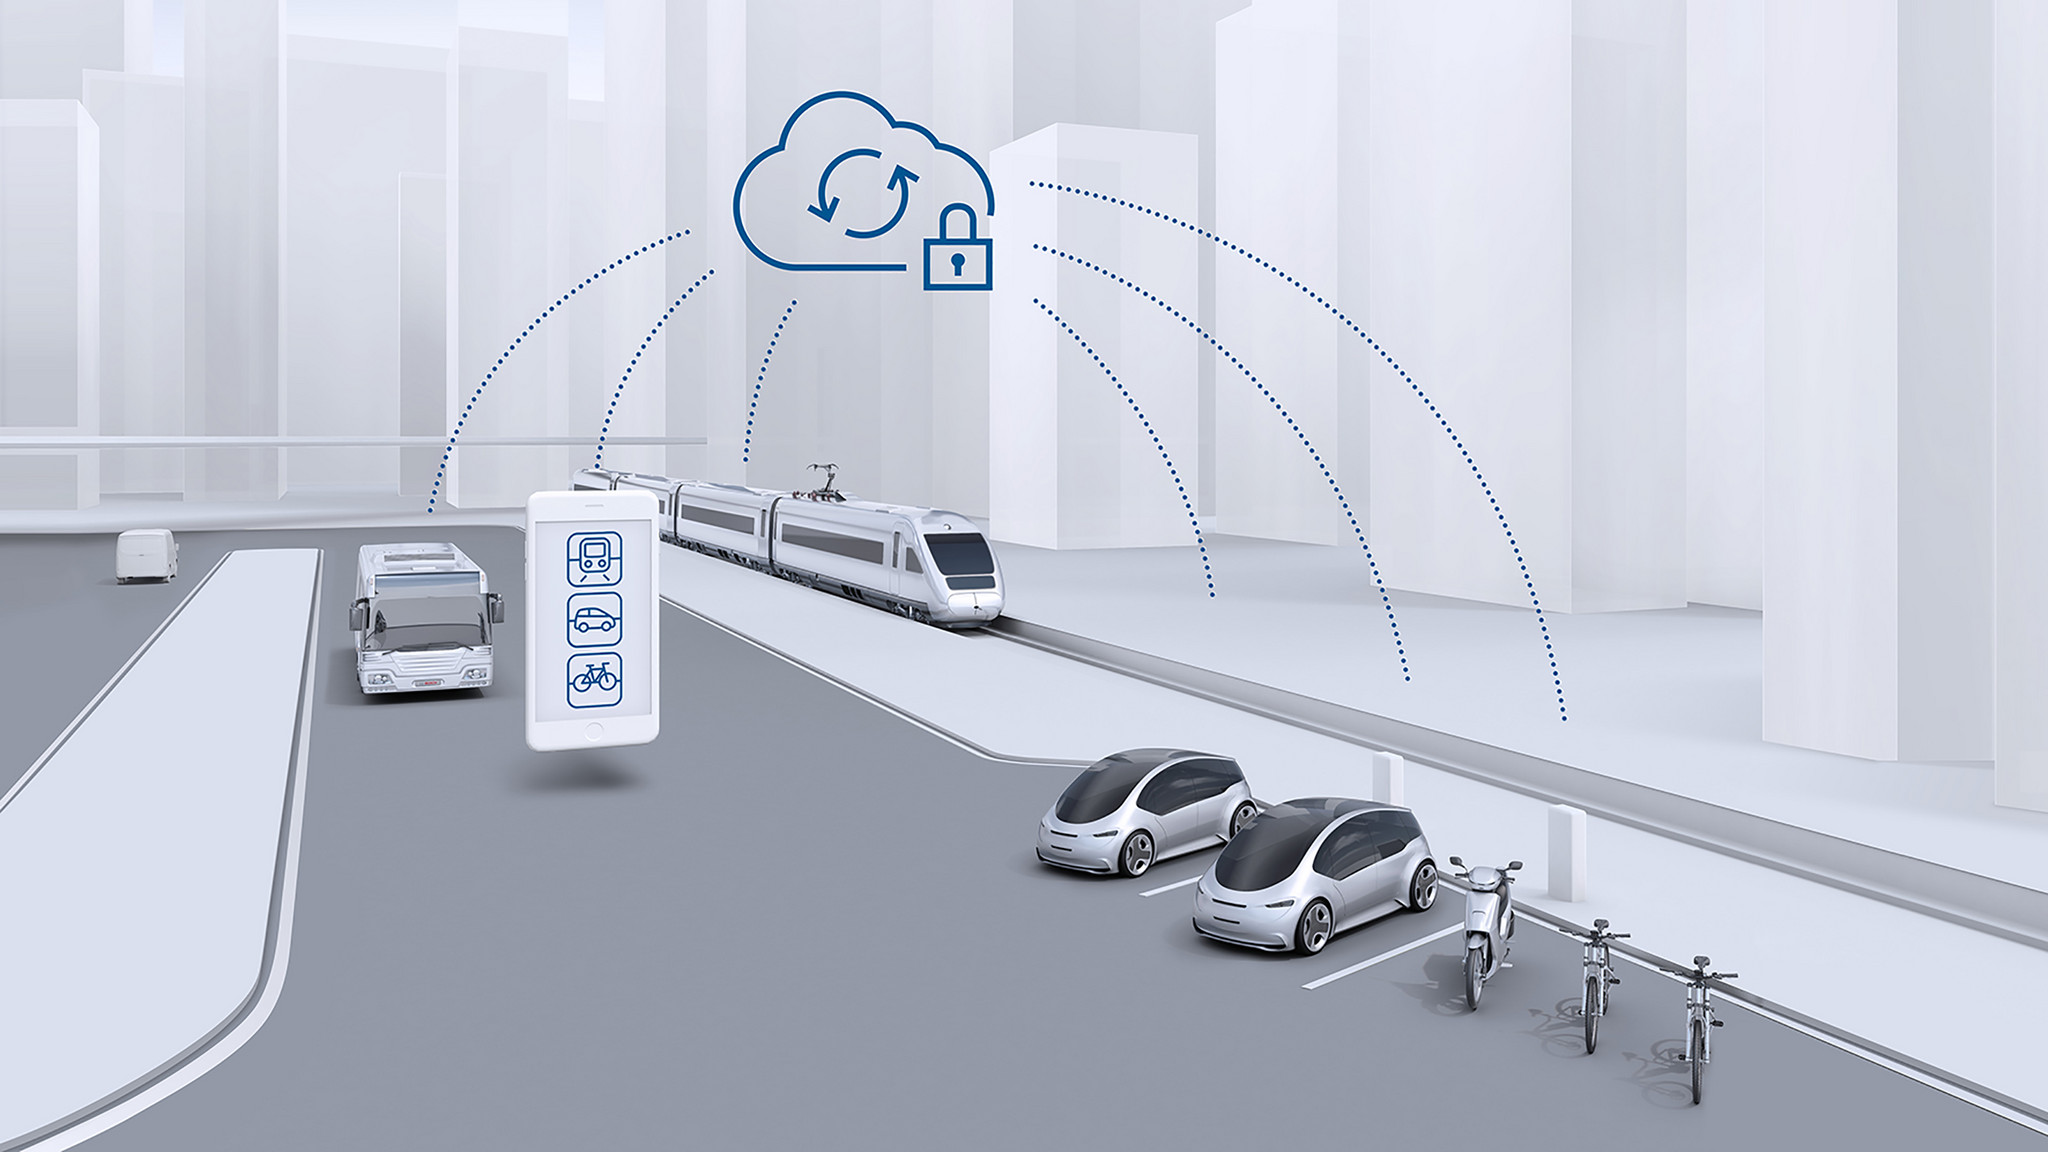 connected_mobility_services_bosch.jpg